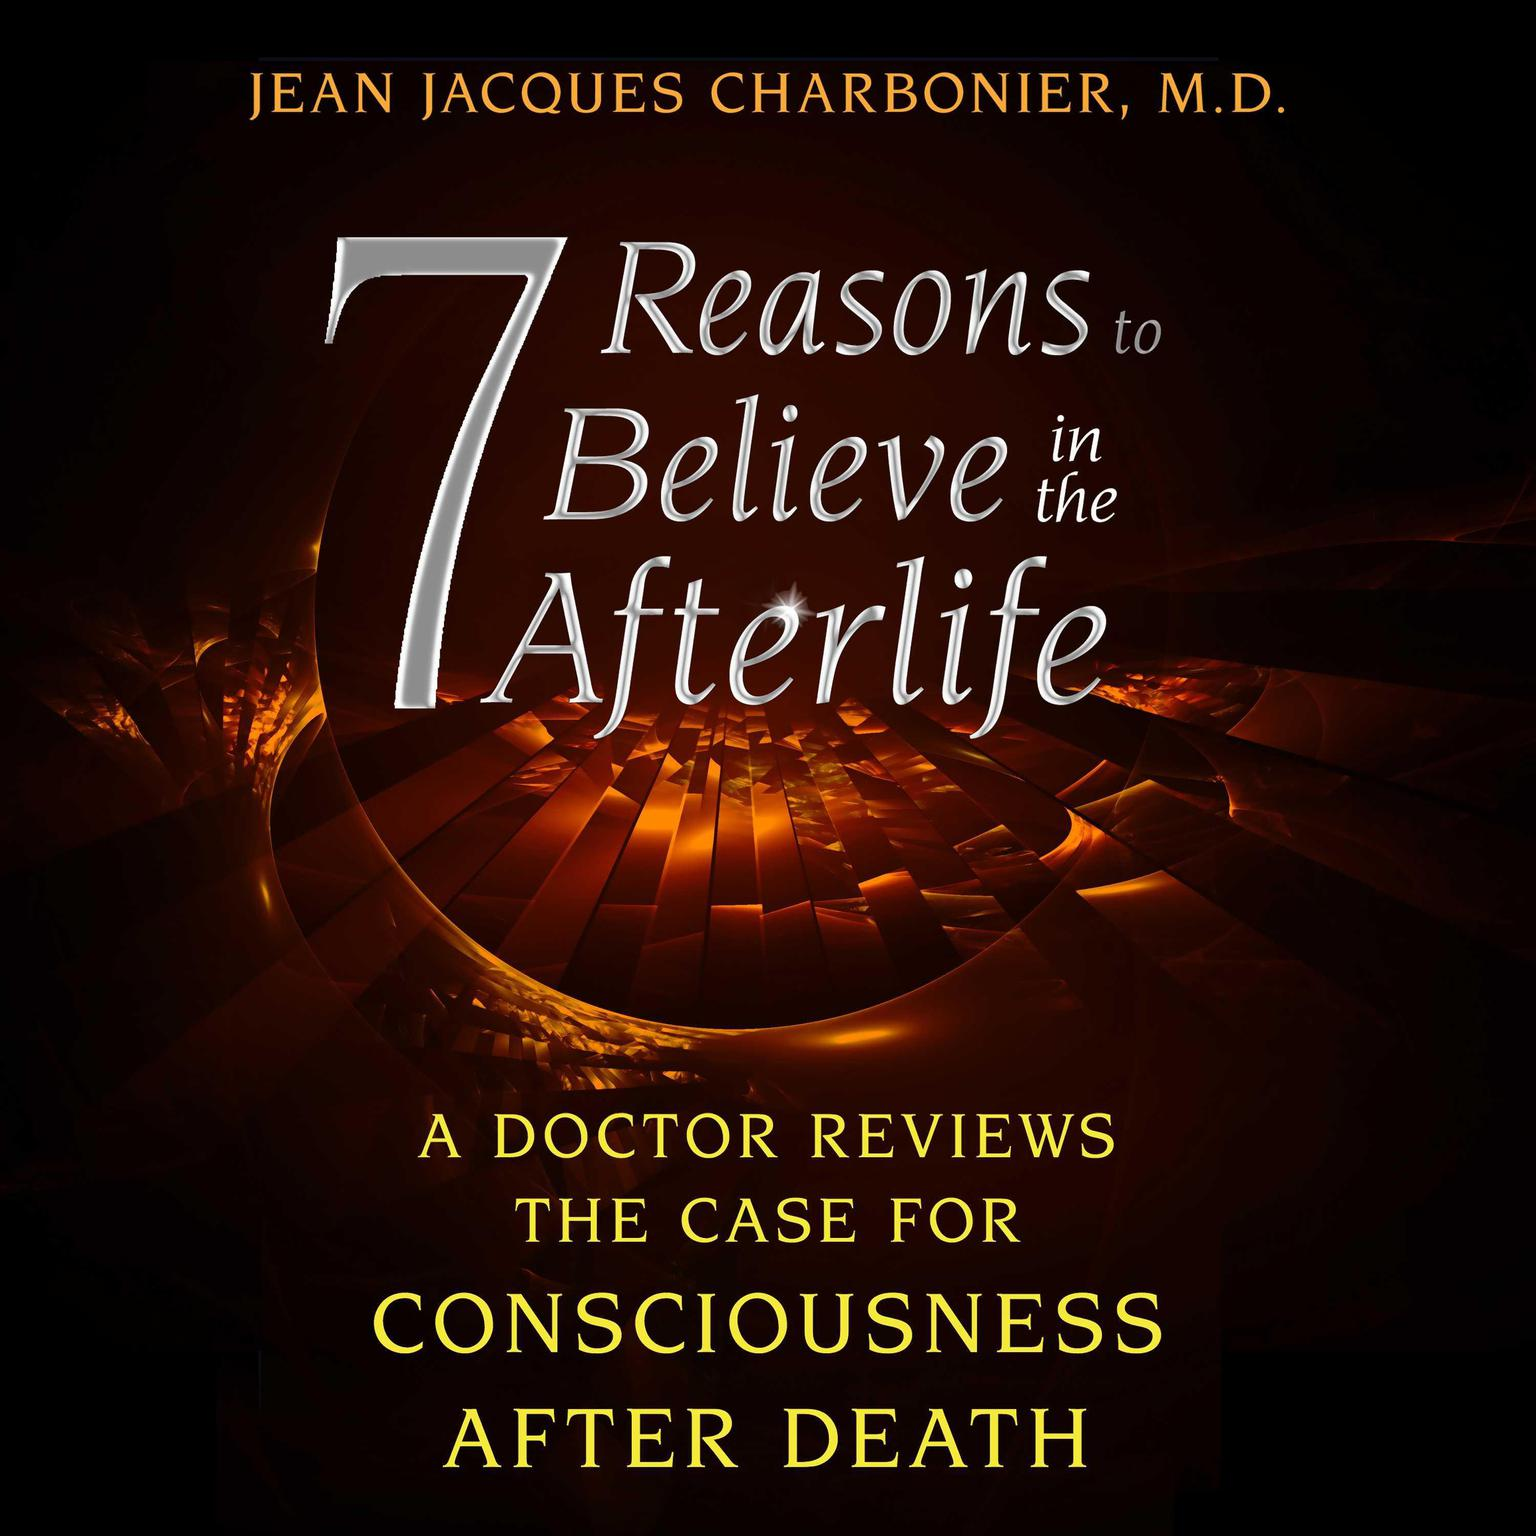 7 Reasons to Believe in the Afterlife: A Doctor Reviews the Case for Consciousness after Death Audiobook, by Jean Jacques Charbonier